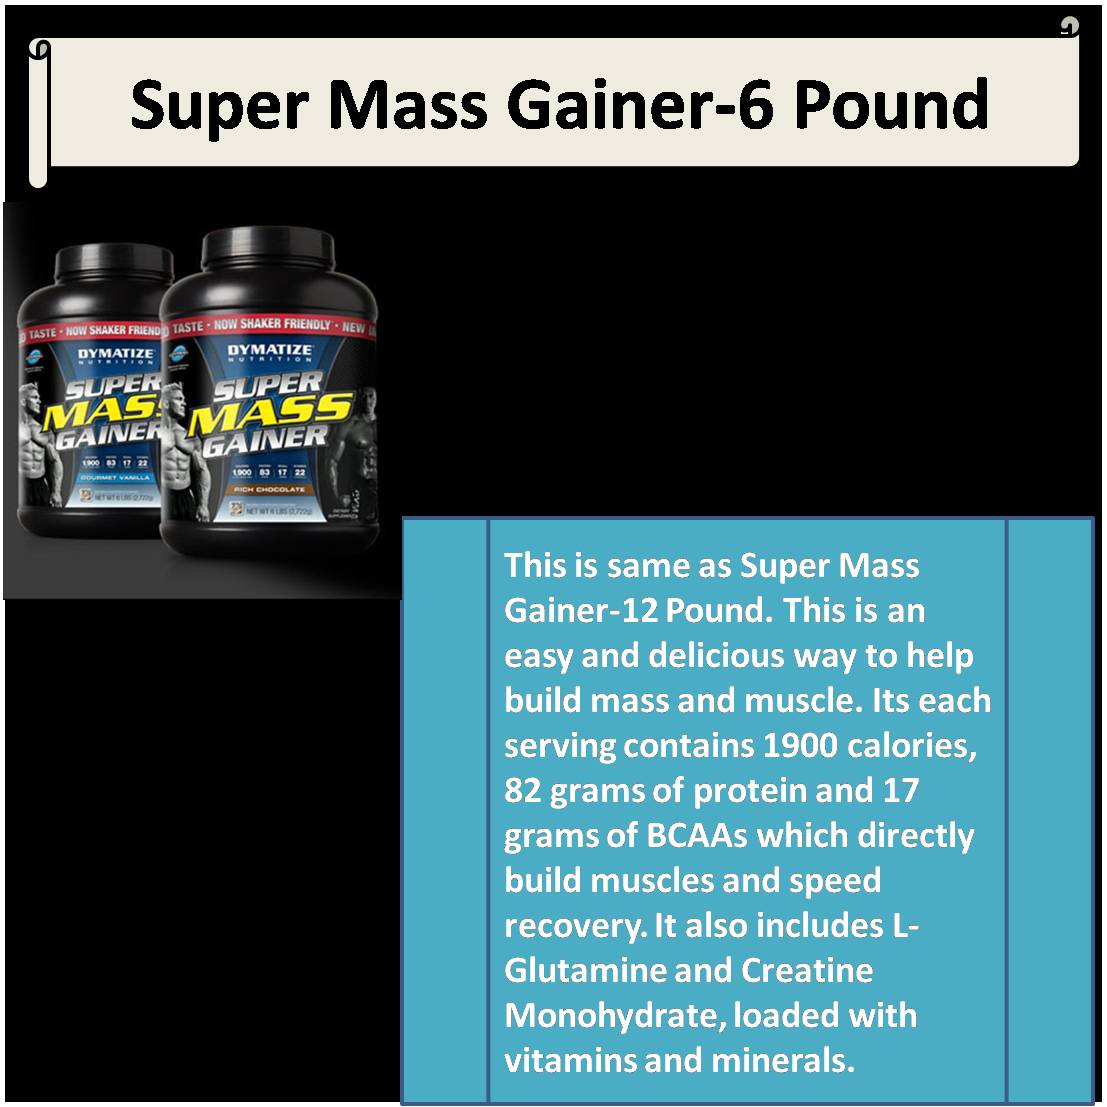 Super Mass Gainer-6 PoundSuper Mass Gainer-6 Pound